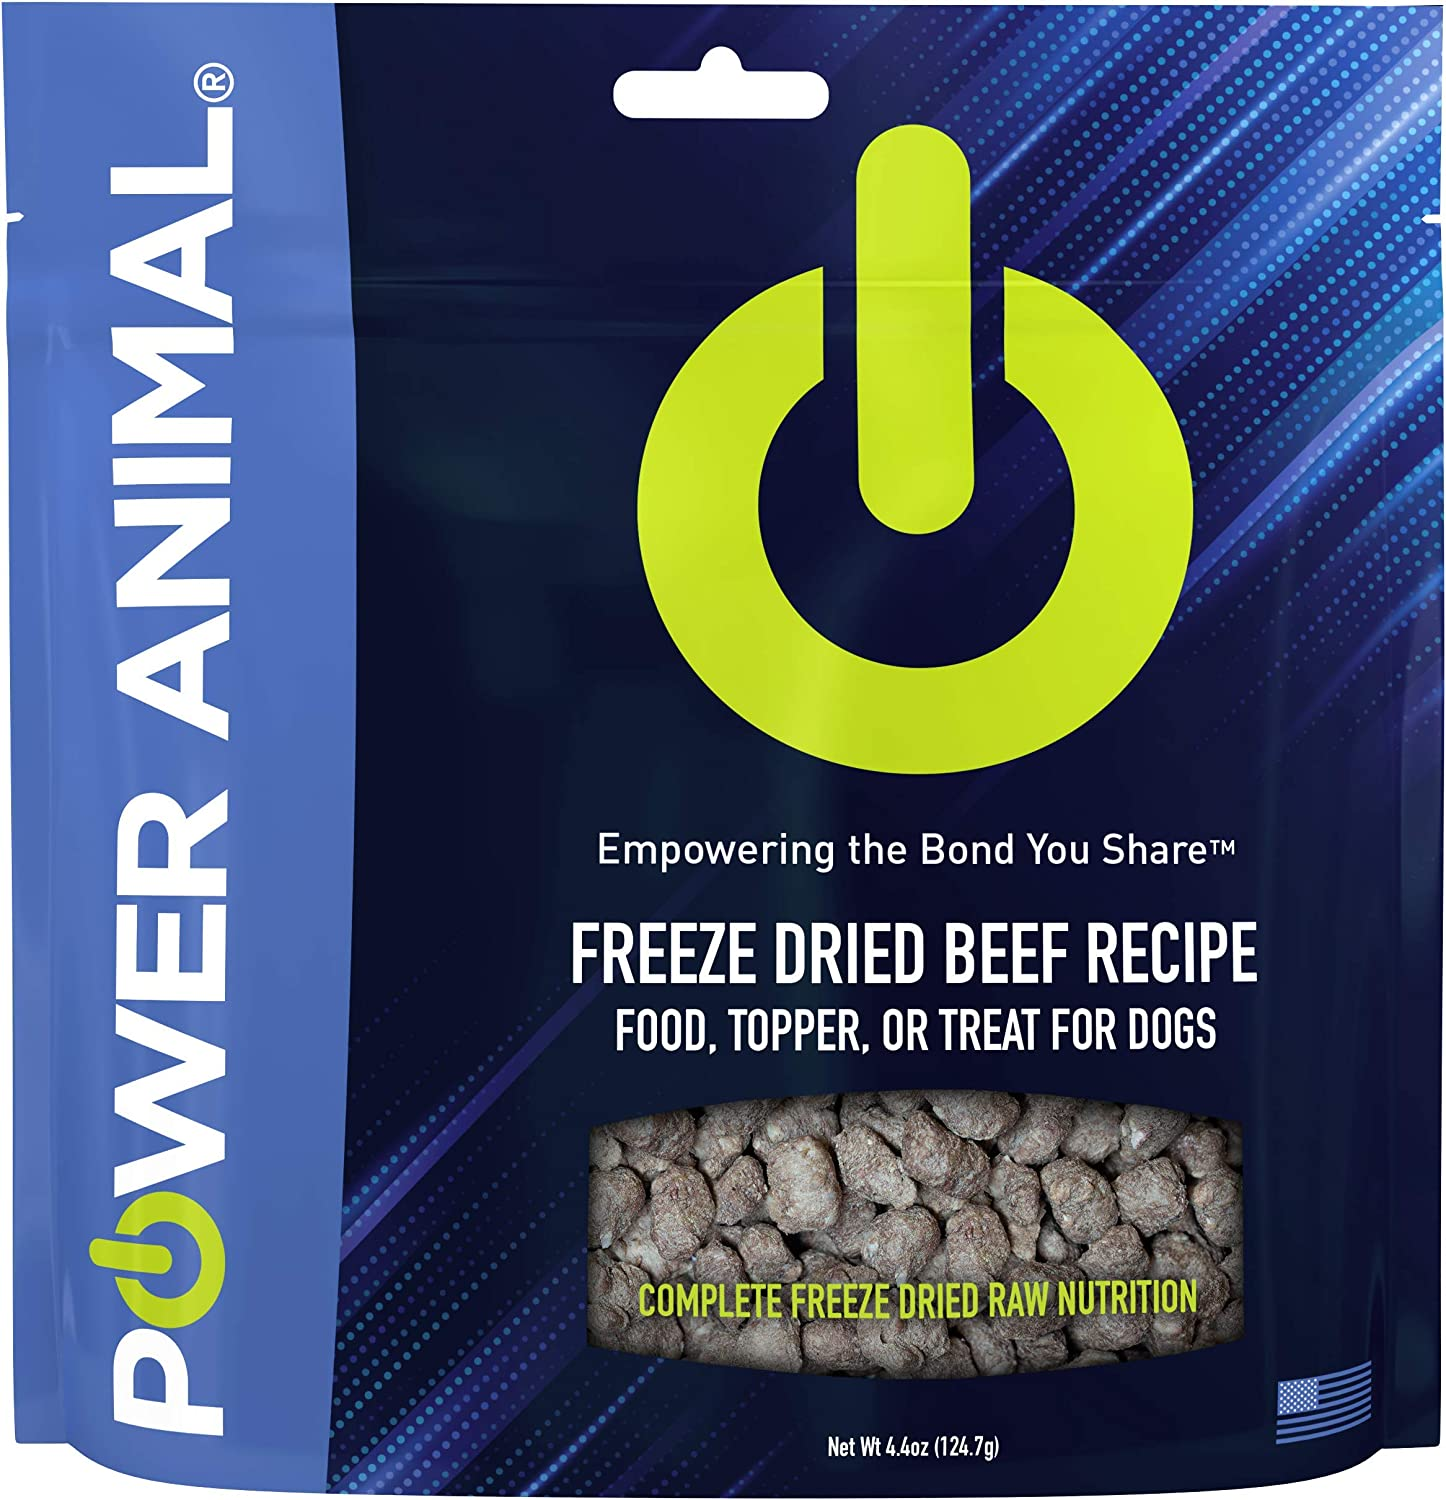 POWER Animal Freeze Dried Raw Dog Food, Dog Food Topper, Dog Treats - Premium Quality Ingredients, Real Meat First Ingredient, All Natural, Complete Nutrition, Humanely Sourced and Made in the USA